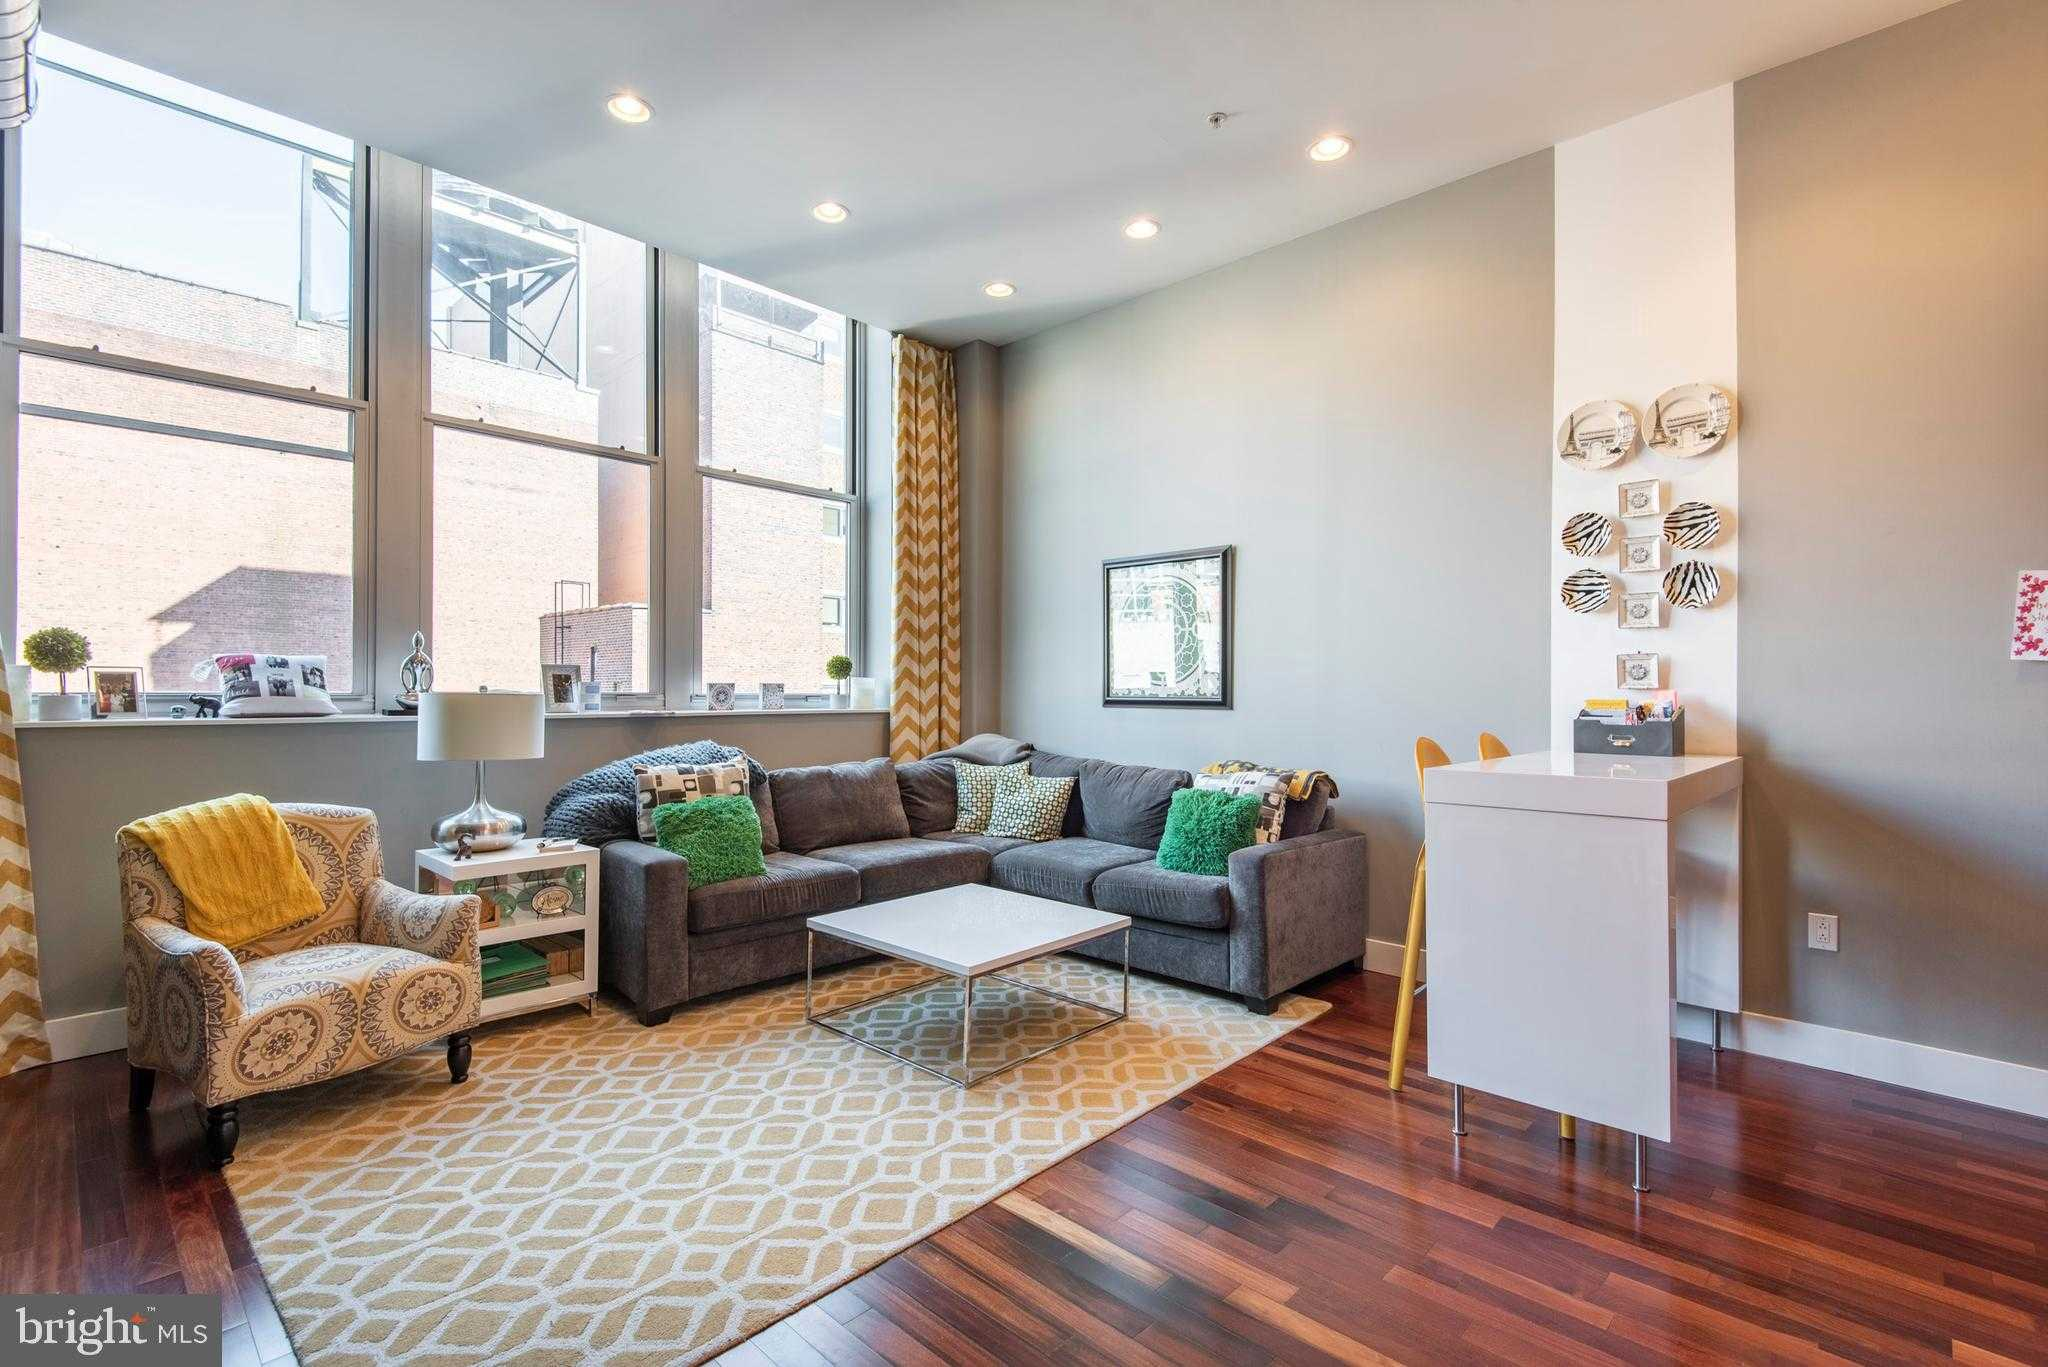 $425,000 - 1Br/1Ba -  for Sale in Washington Sq West, Philadelphia